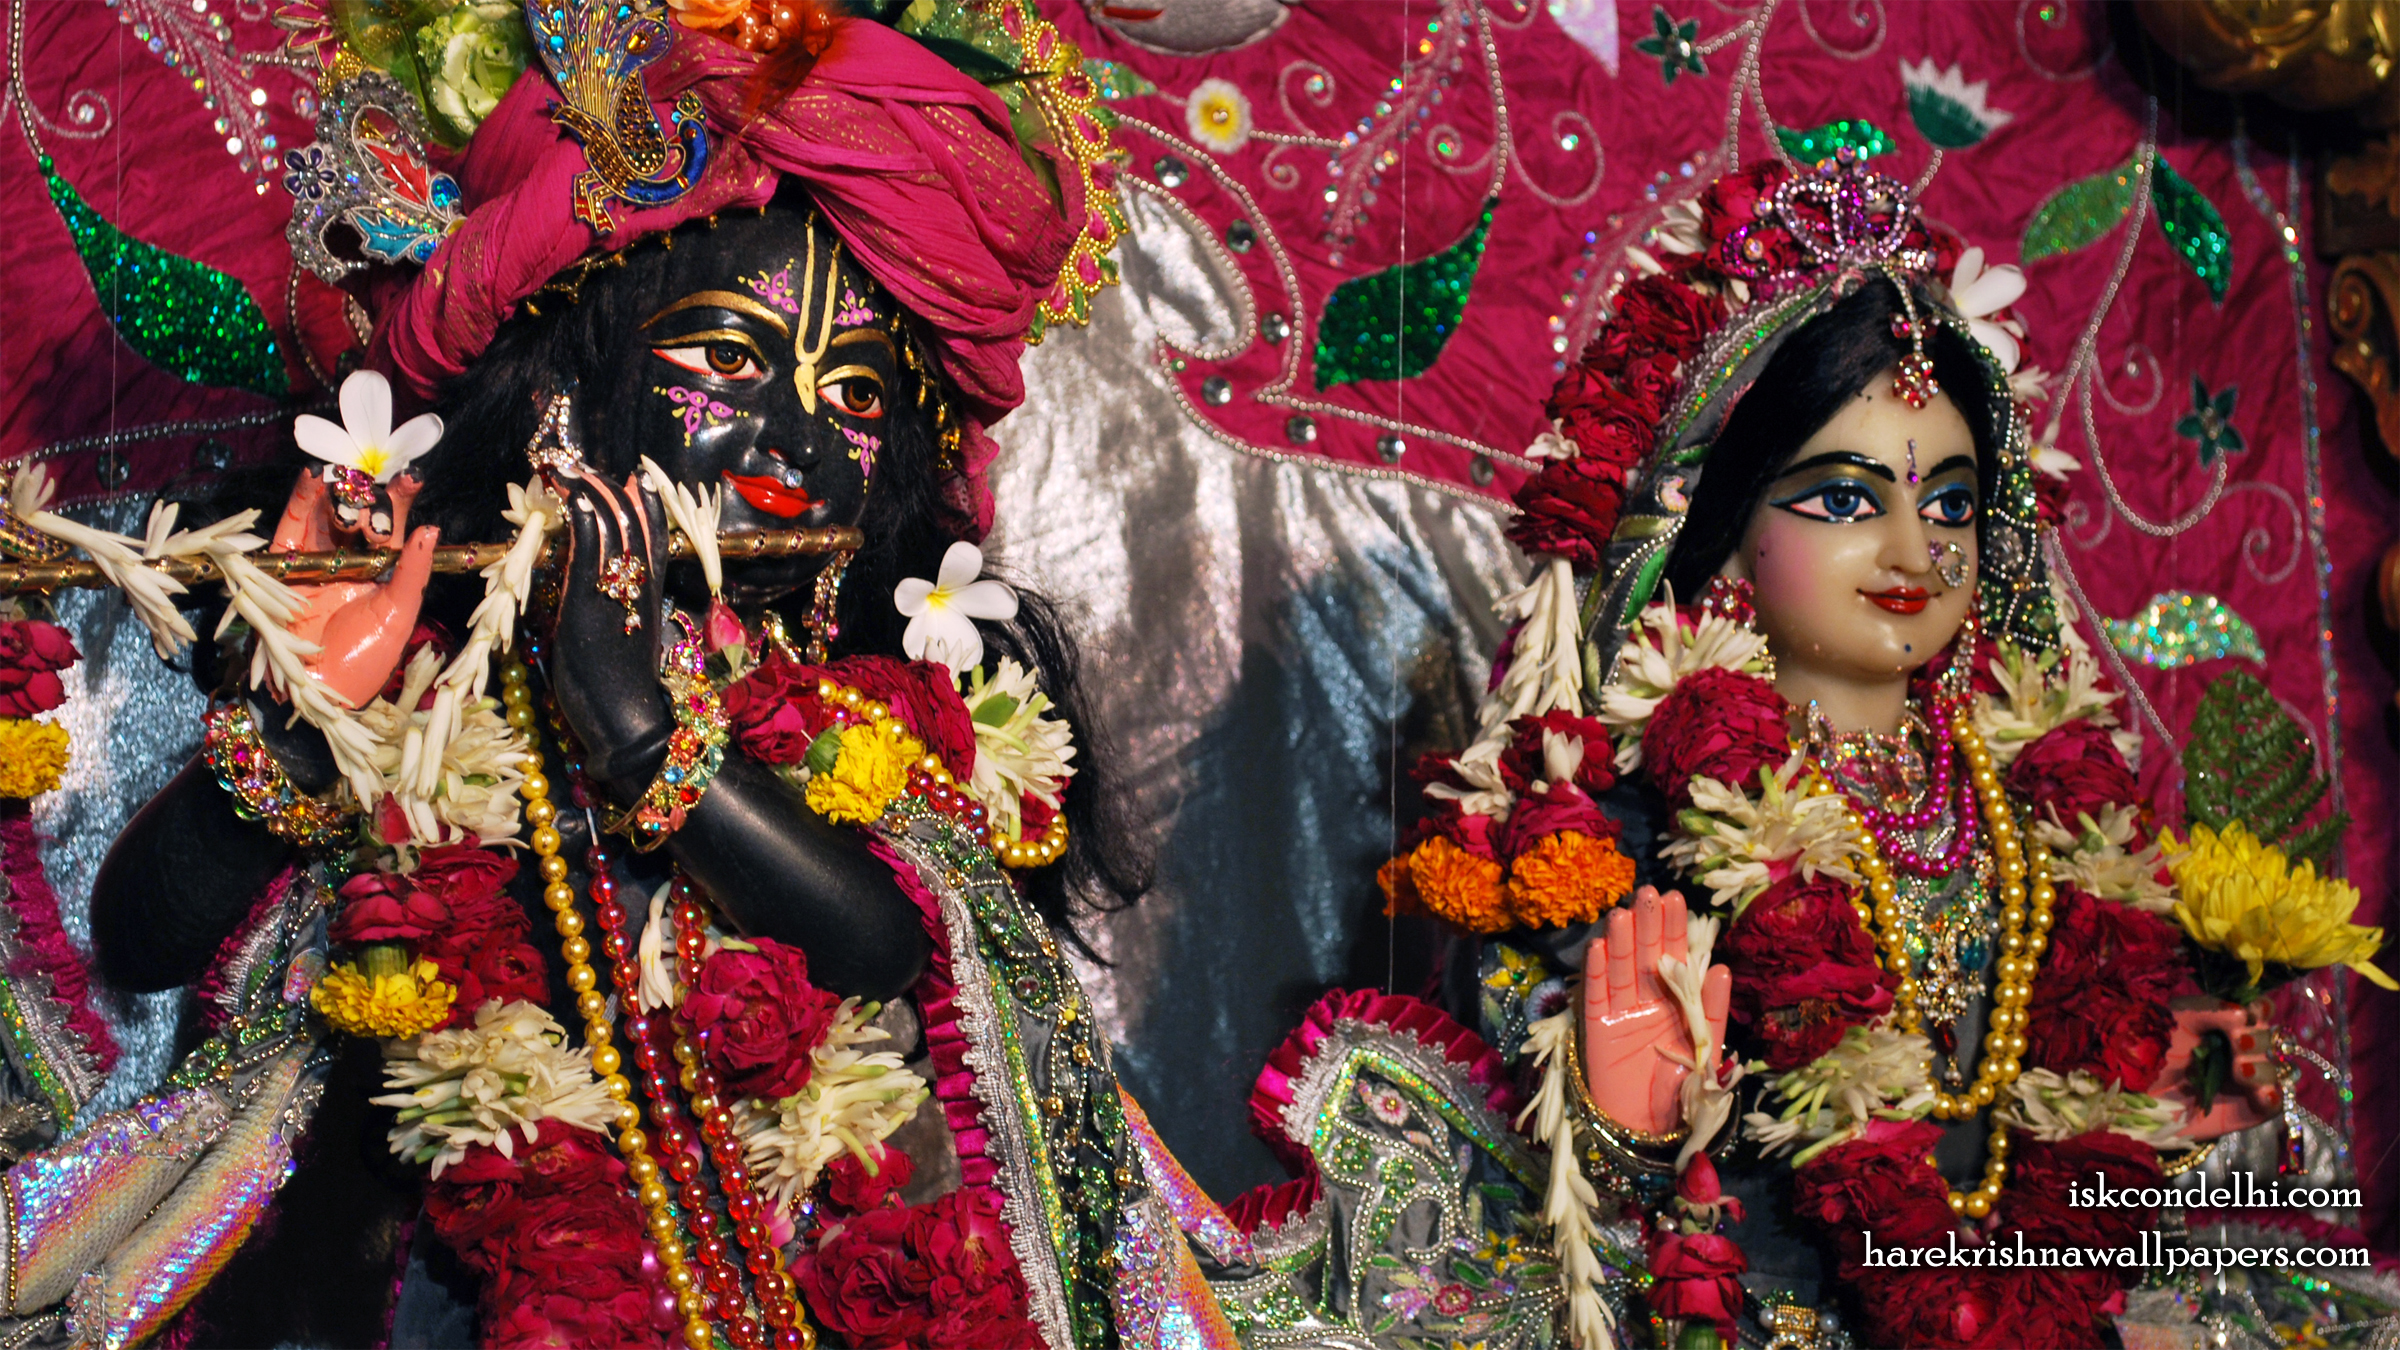 Sri Sri Radha Parthasarathi Close up Wallpaper (014) Size 2400x1350 Download